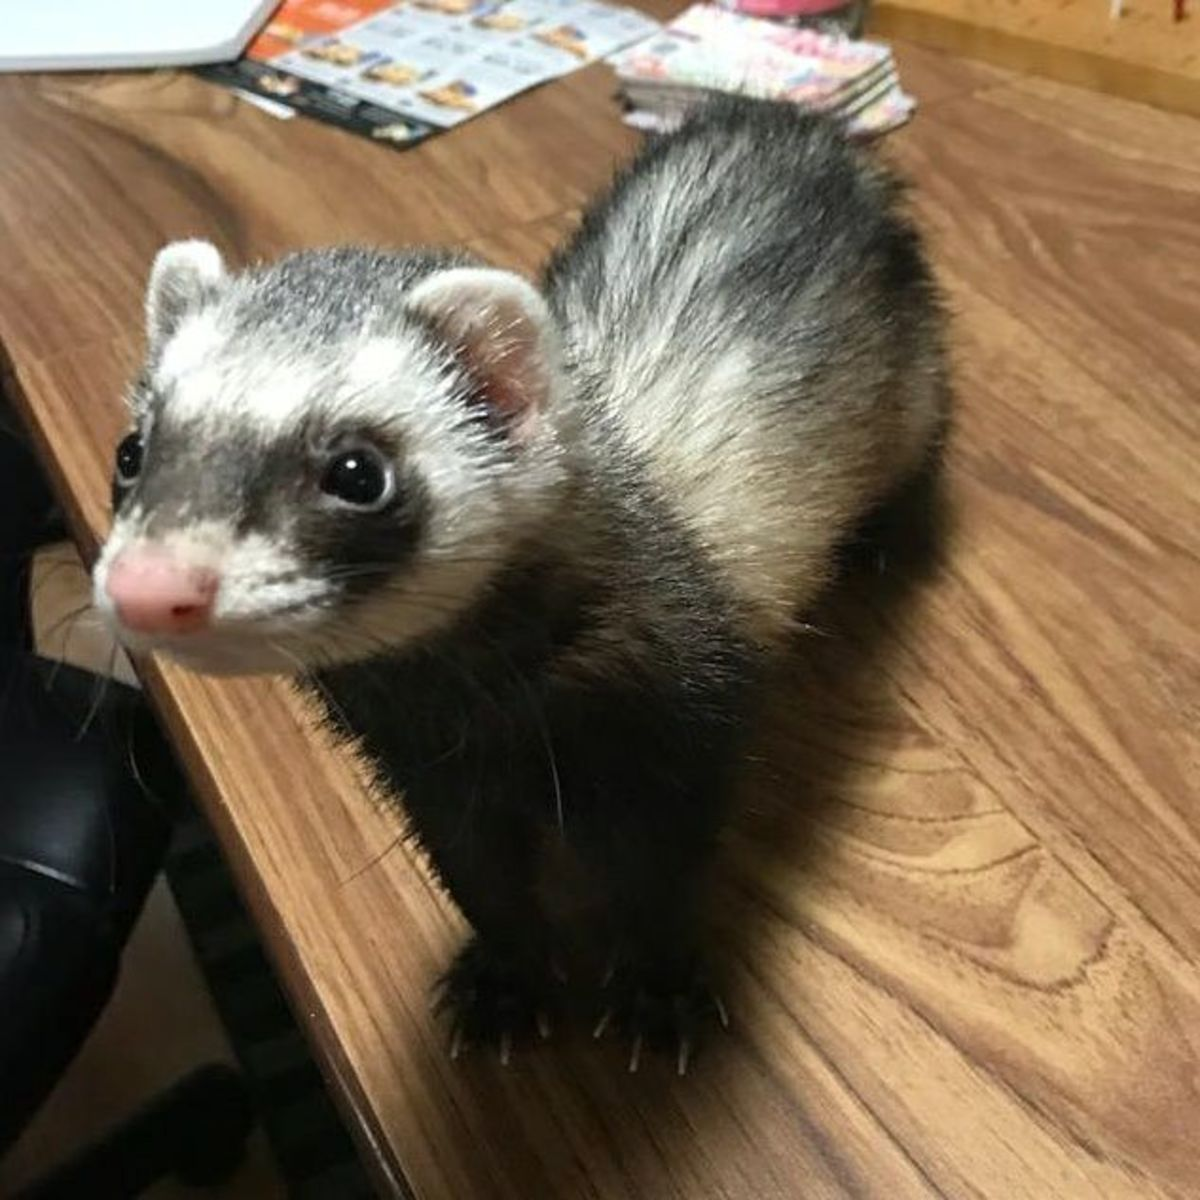 Basic Ferret Care and Facts